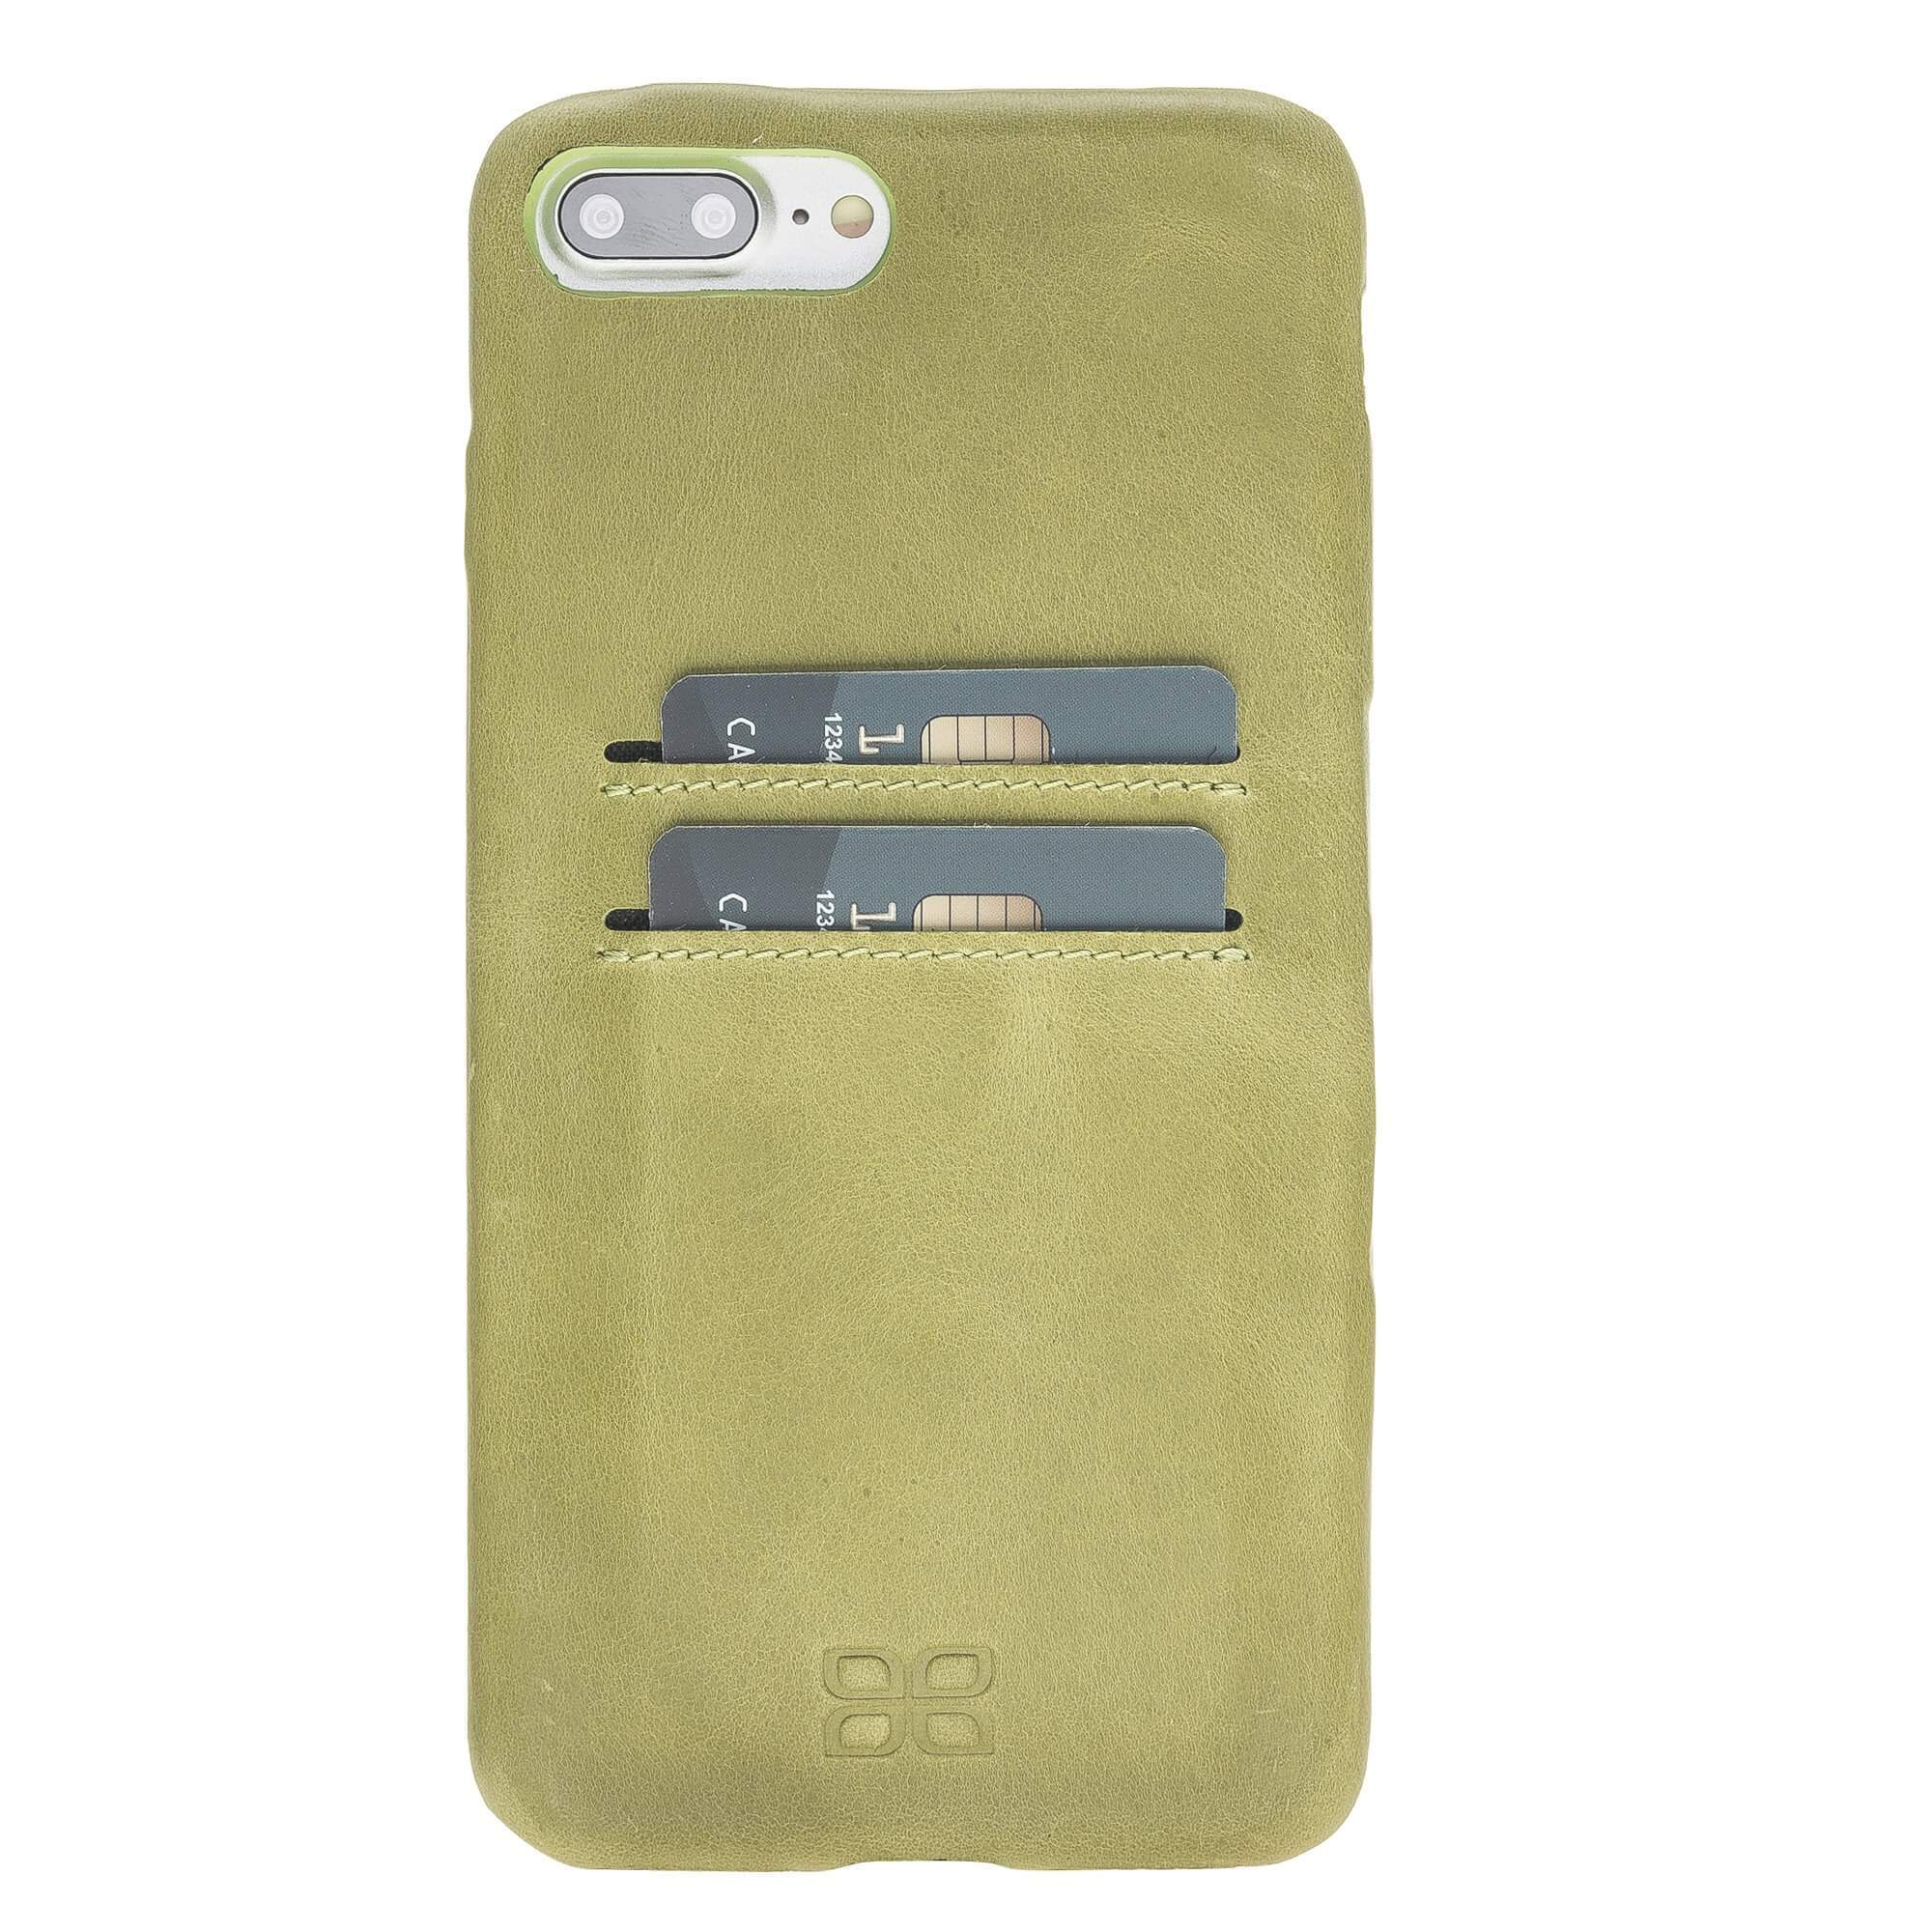 Phone Case Leather Ultra Cover with Credit Card Slots for Apple iPhone 7/8 Plus - Crazy Green Bouletta Shop